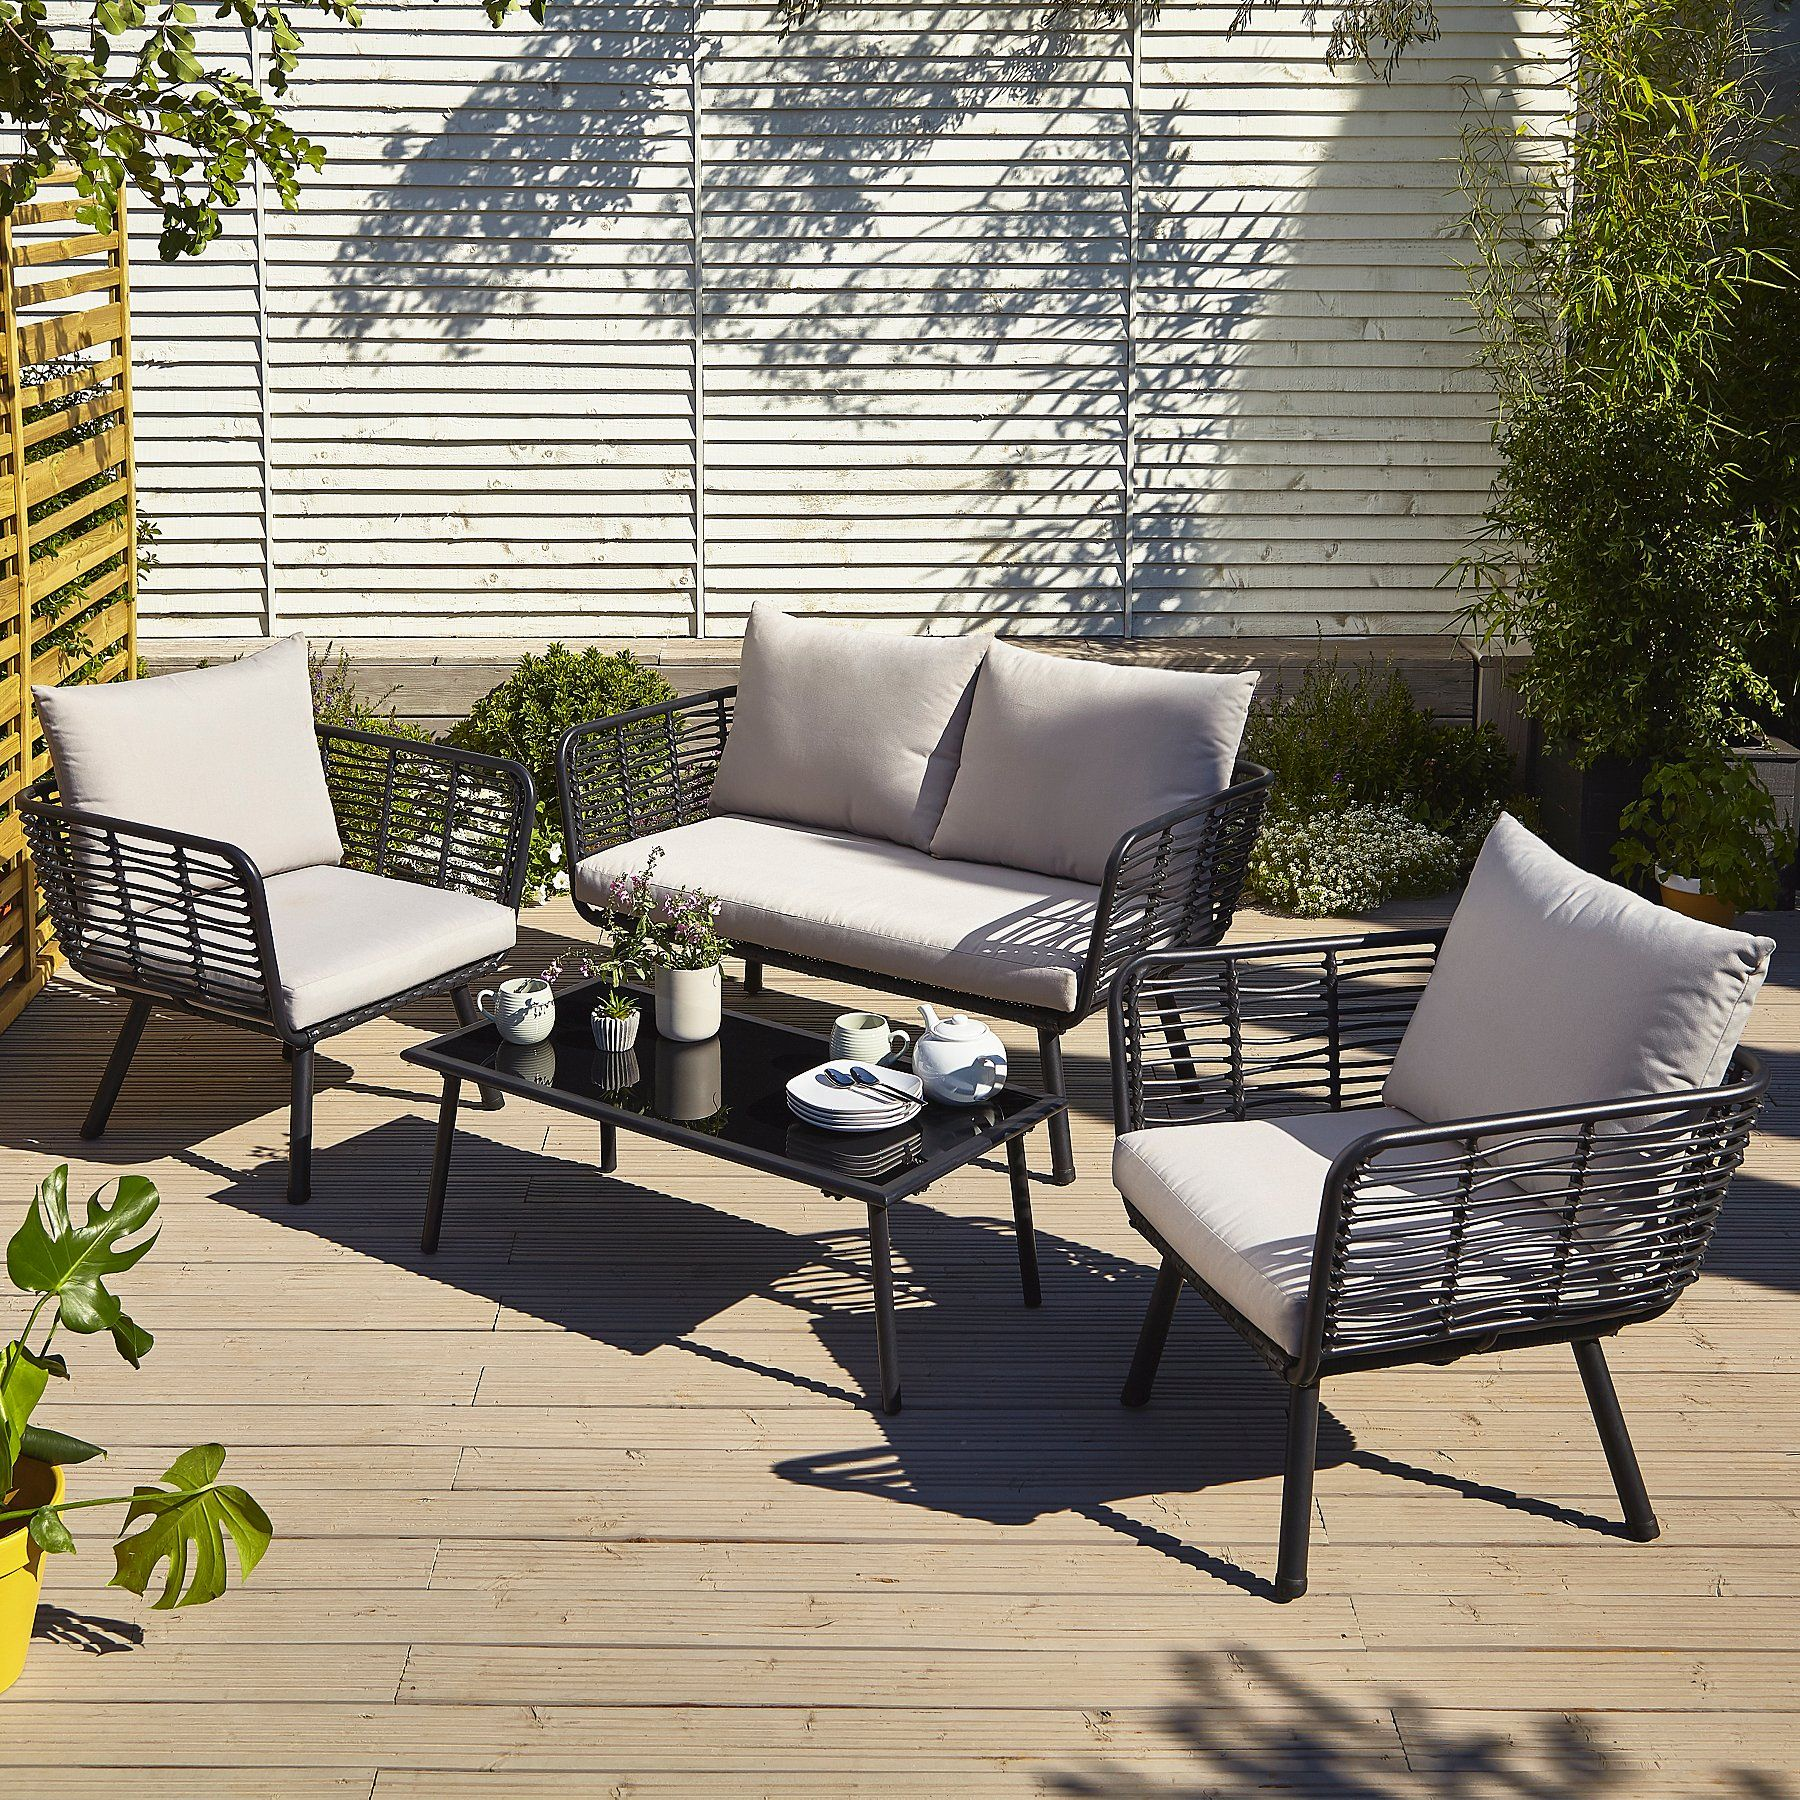 New 4 Piece Garden Furniture Conservatory Patio Outdoor Table Chairs Rattan Home